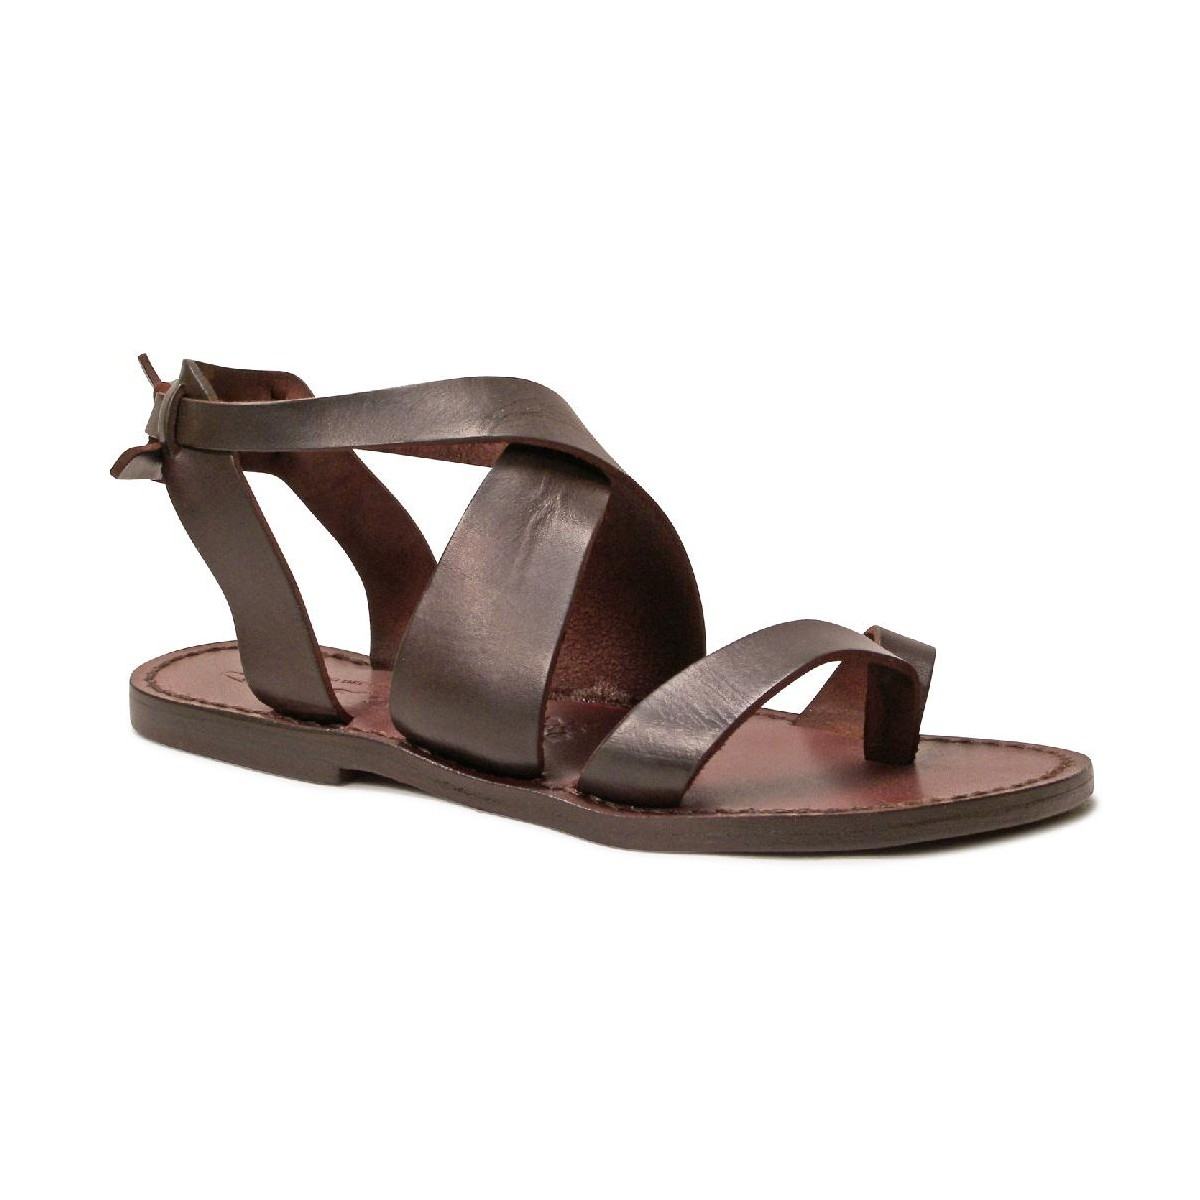 Wonderful Brown Leather Thong Sandals For Women Handmade | Gianluca - The Leather Craftsman